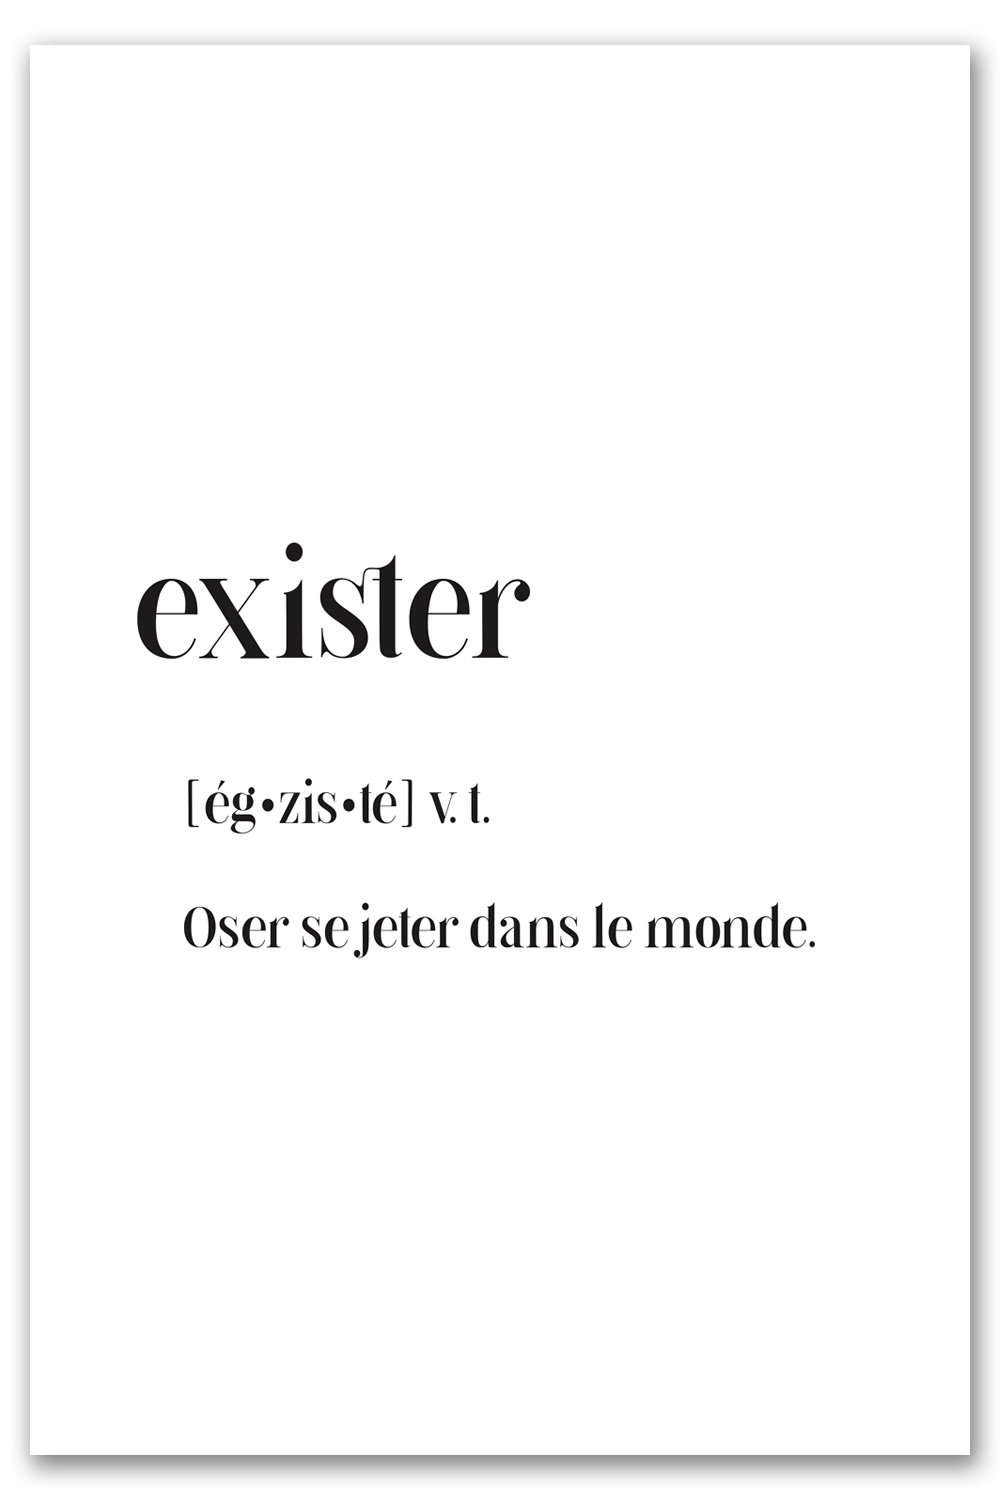 exister